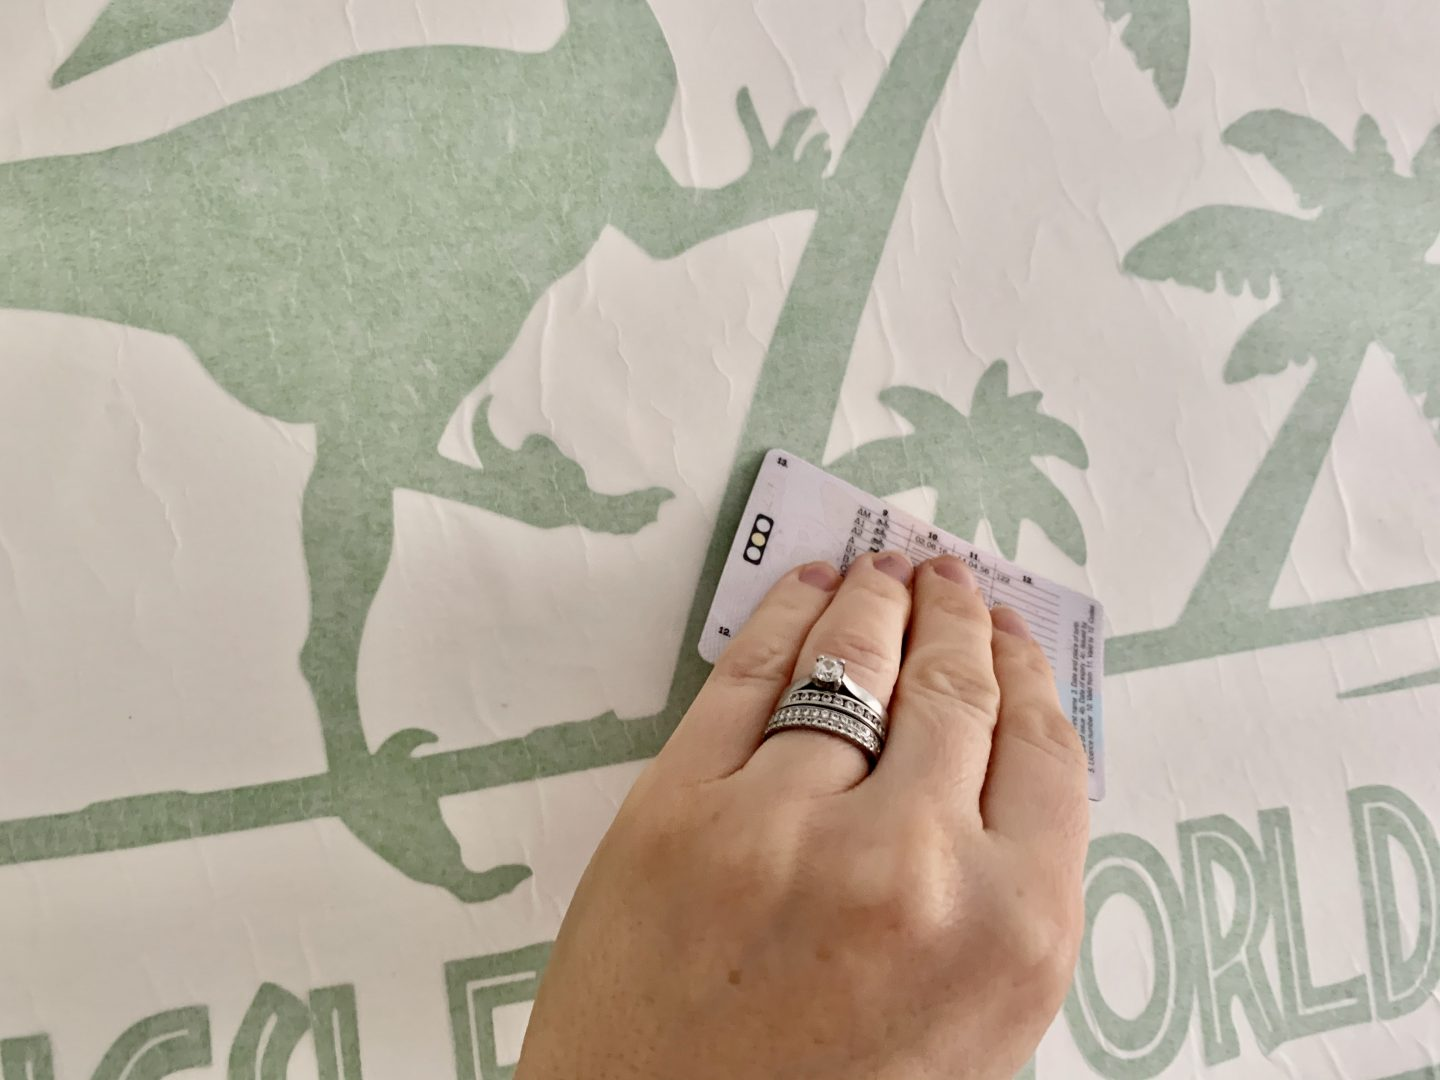 Using a credit card to transfer the wall sticker onto the wall in his dinosaur themed bedroom